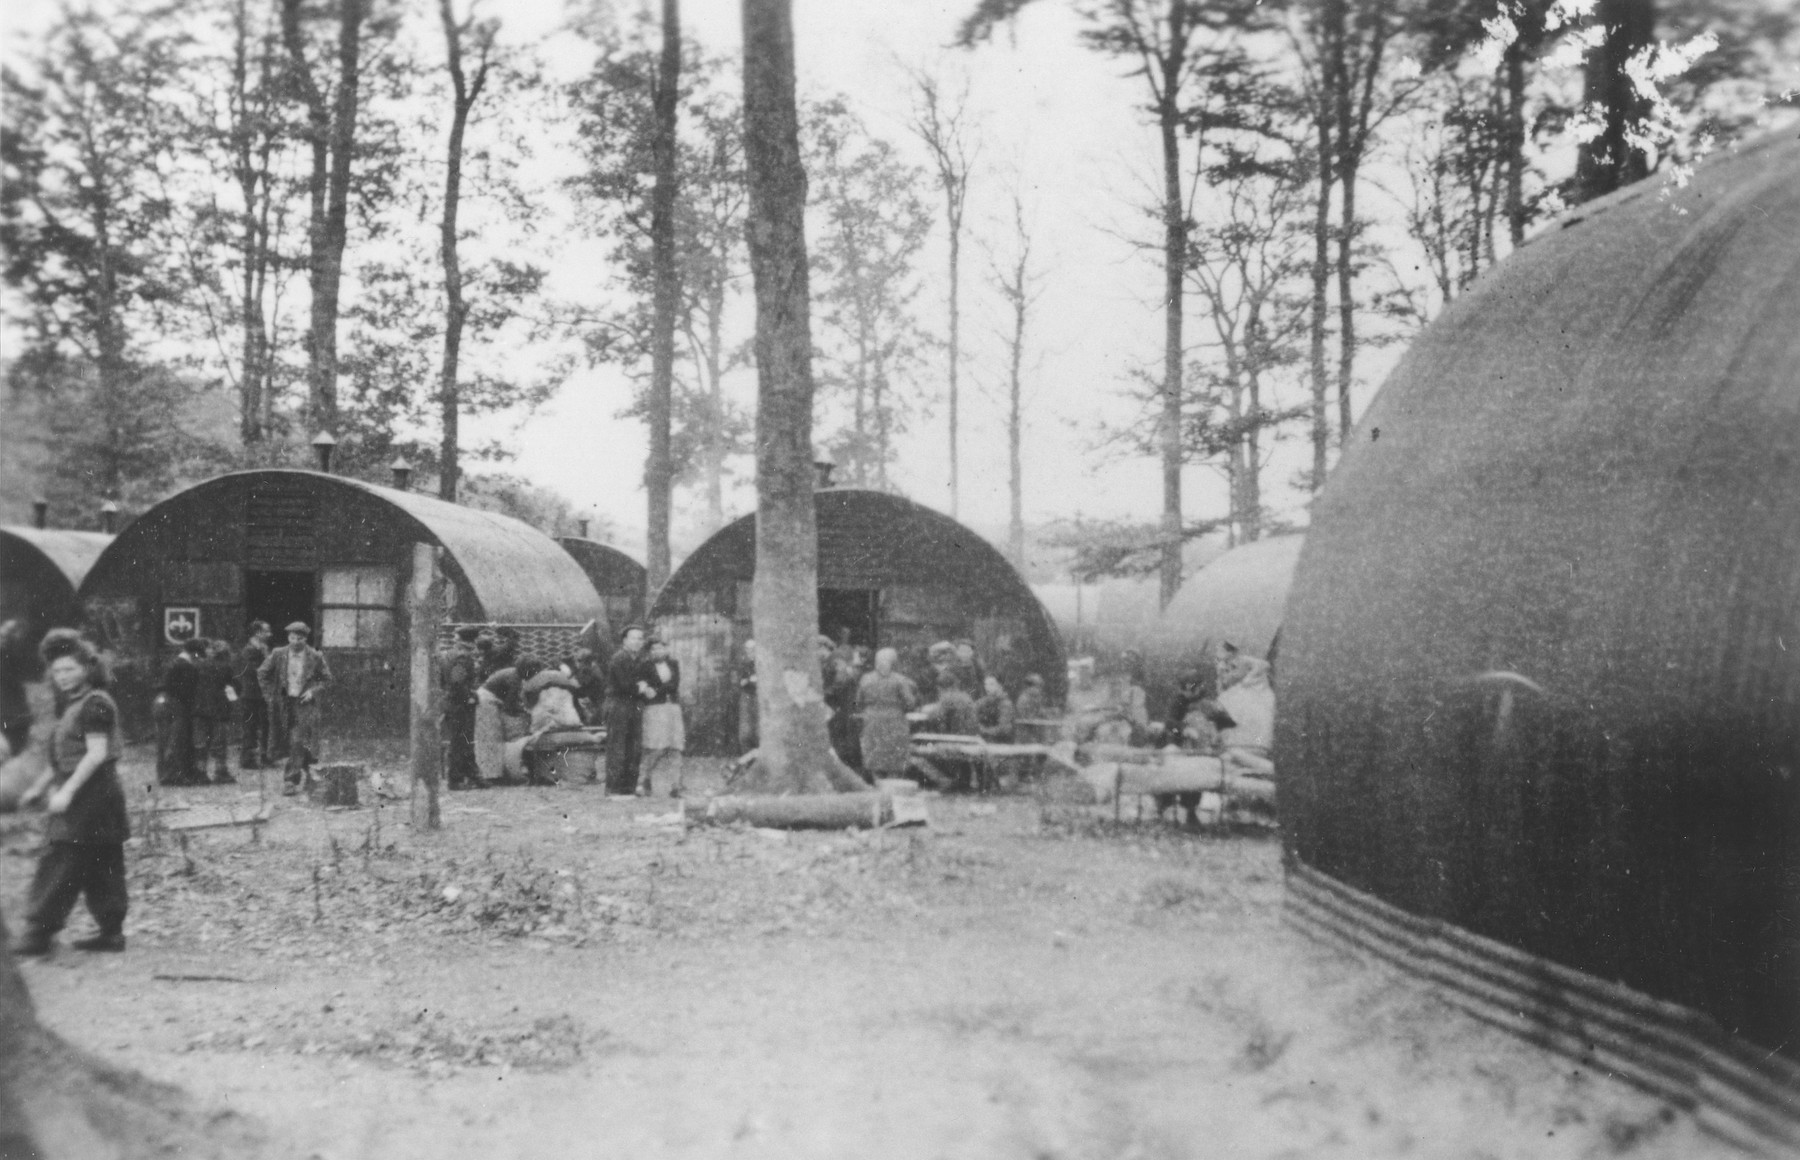 Former passengers on the Exodus 1947 gather outside a row of Nissen huts in the Poppendorf displaced persons camp.